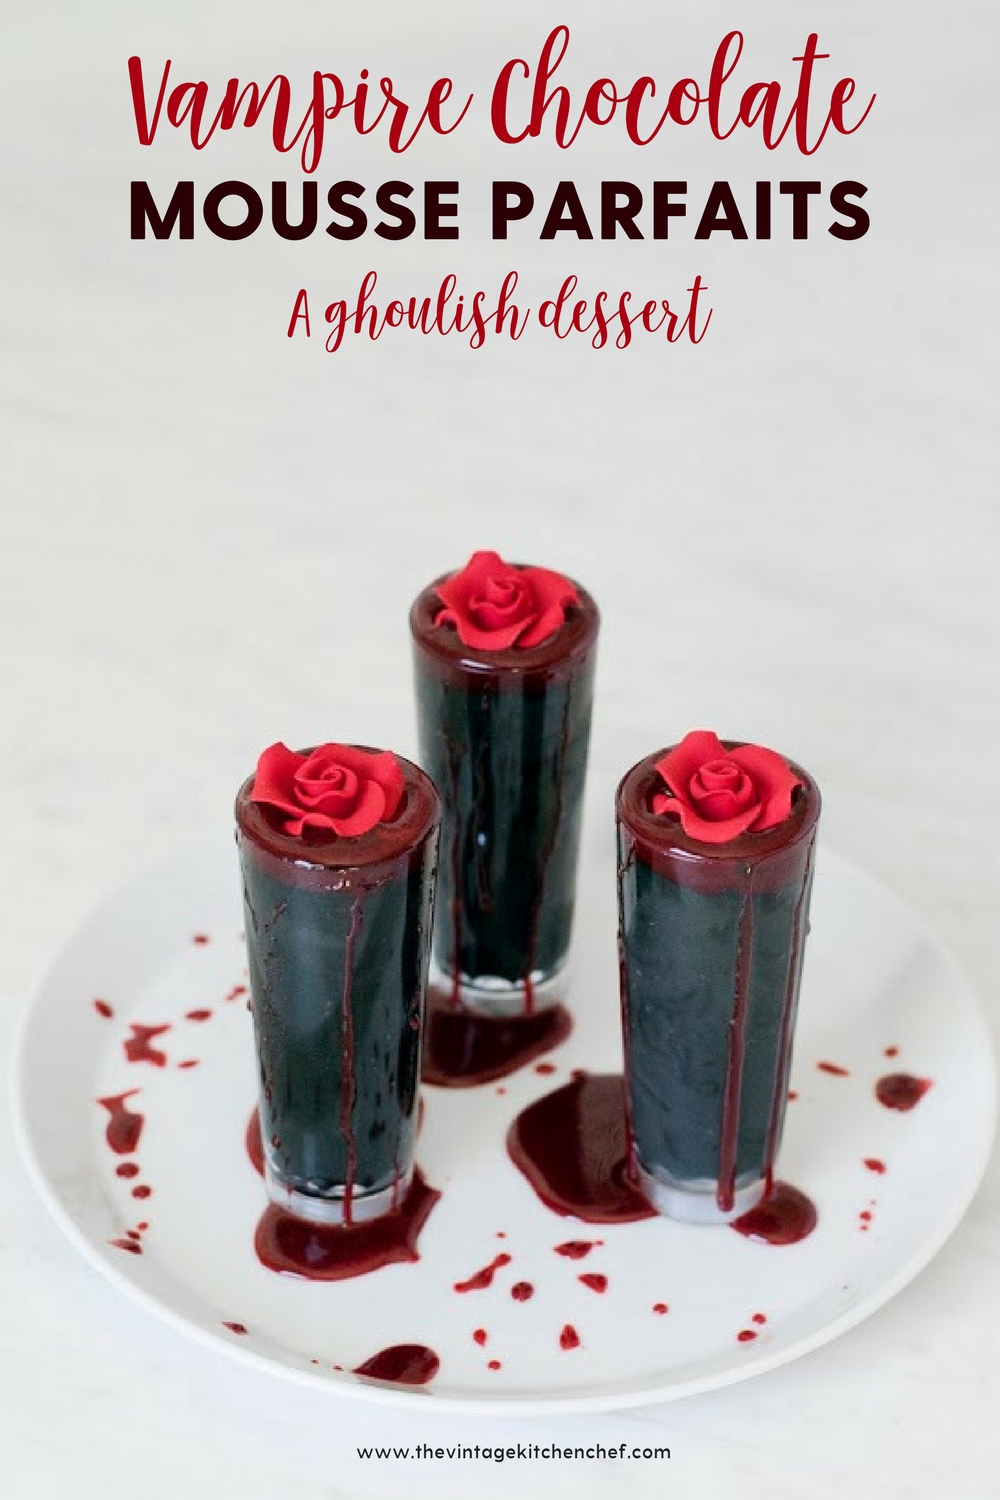 A creepy, decadent and insanely delicious mini dessert! Rich and creamy chocolate mousse with a splash of edible blood on the top...what's not to love?